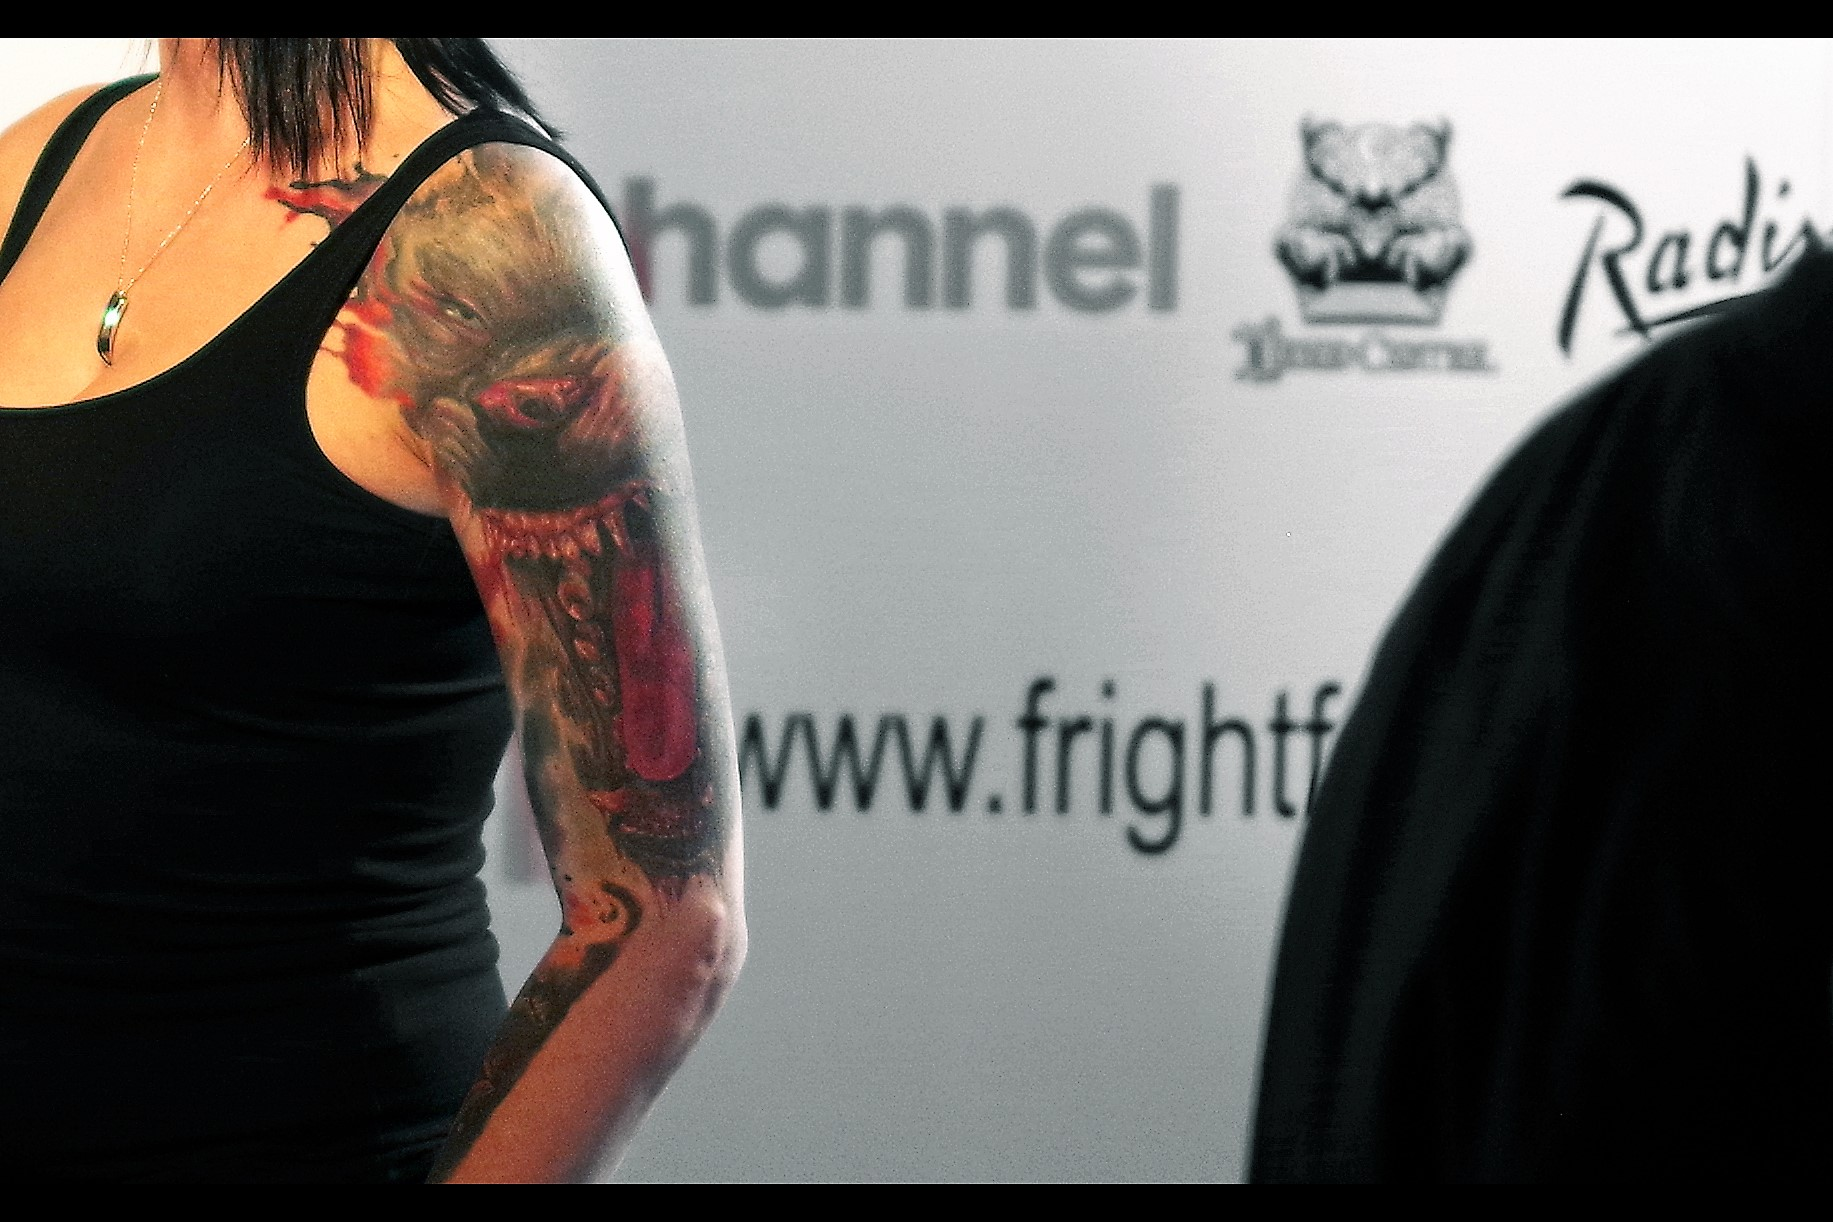 Quick distraction : how awesome is the left arm tattoo/sleeve of the interviewer? I'm not this edgy, though I do have a couple of obscure watch brands in my collection that might impress novices and dismay anyone who actually knows about watches.